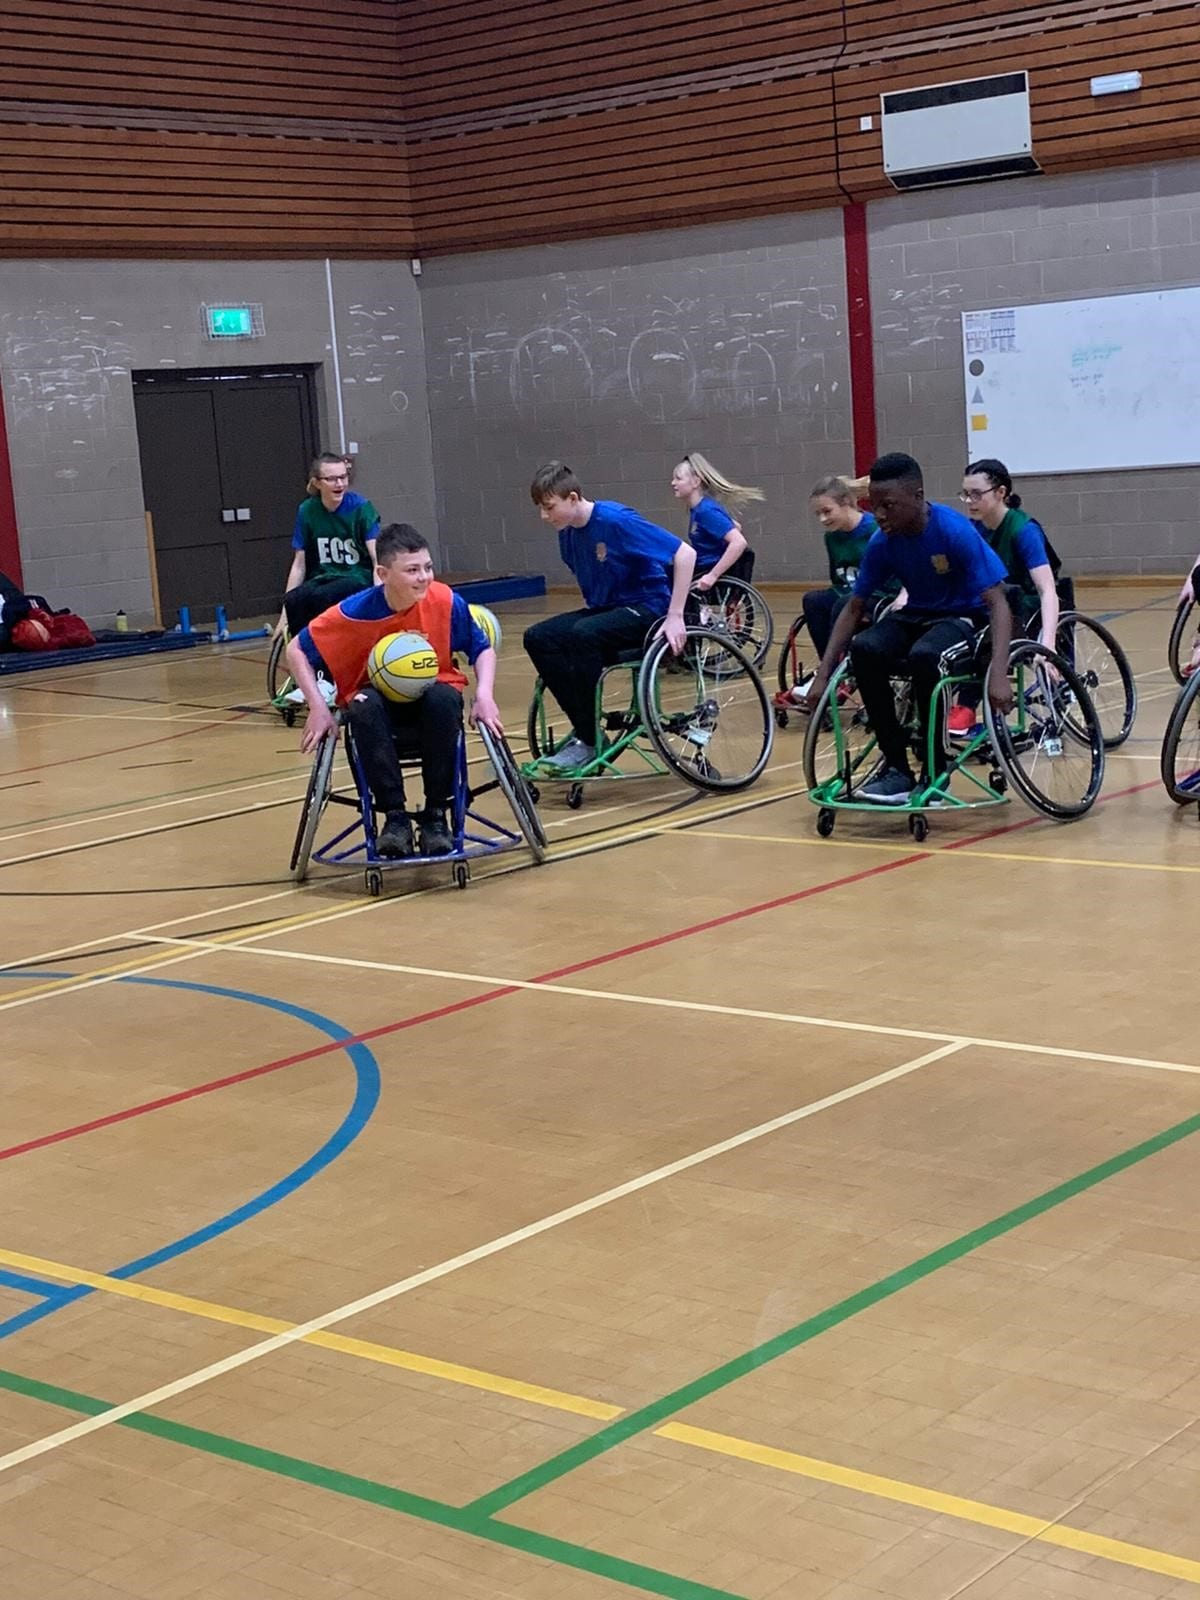 Key stage 3 students take part in wheelchair basketball